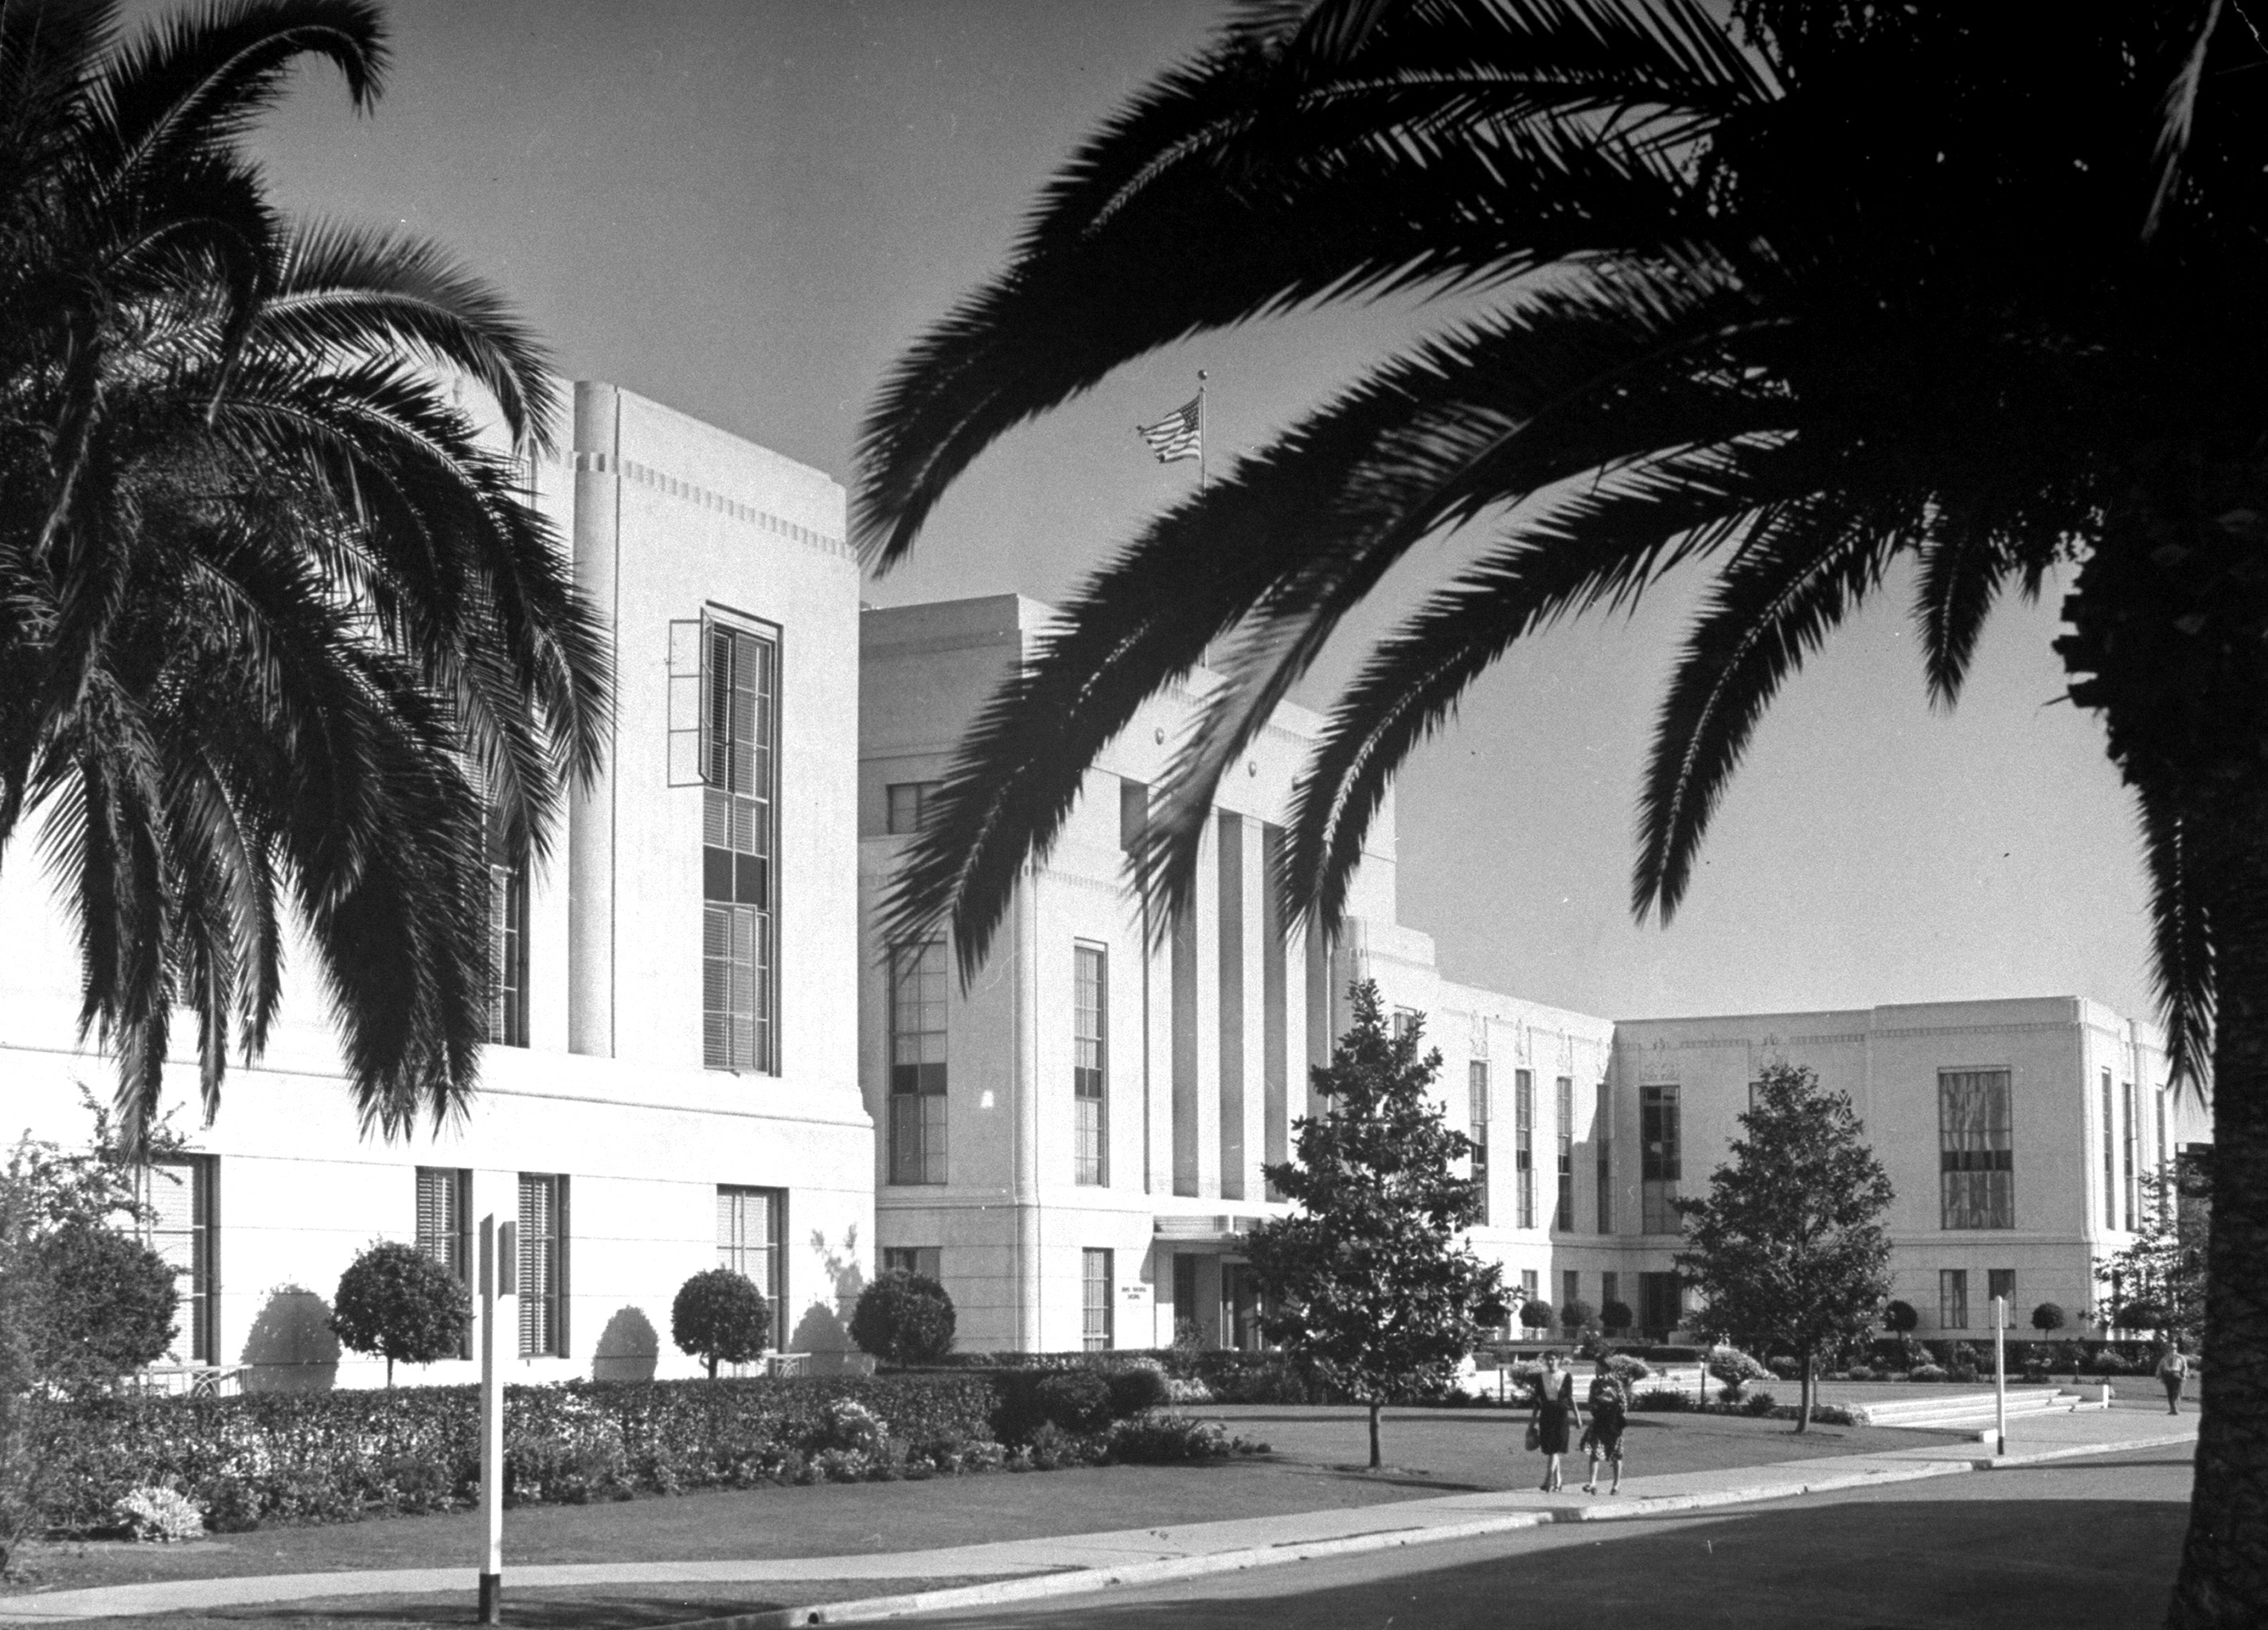 The sleek new building that hosts the offices of producers and directors of MGM, 1943.